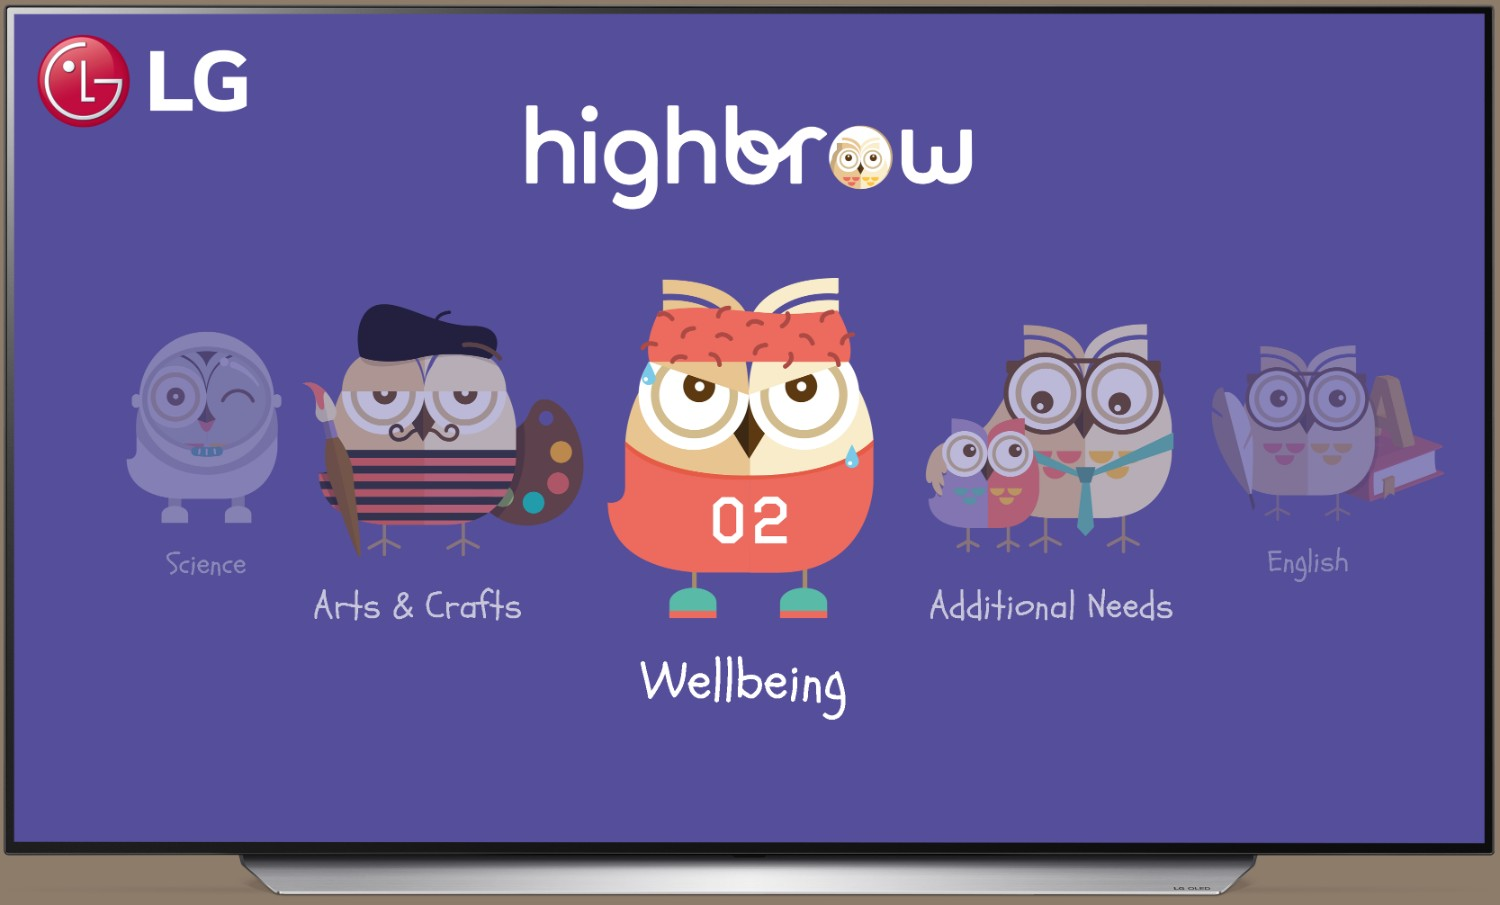 There's a New Expertly-Curated Educational TV Content For Young Learners by LG and Highbrow